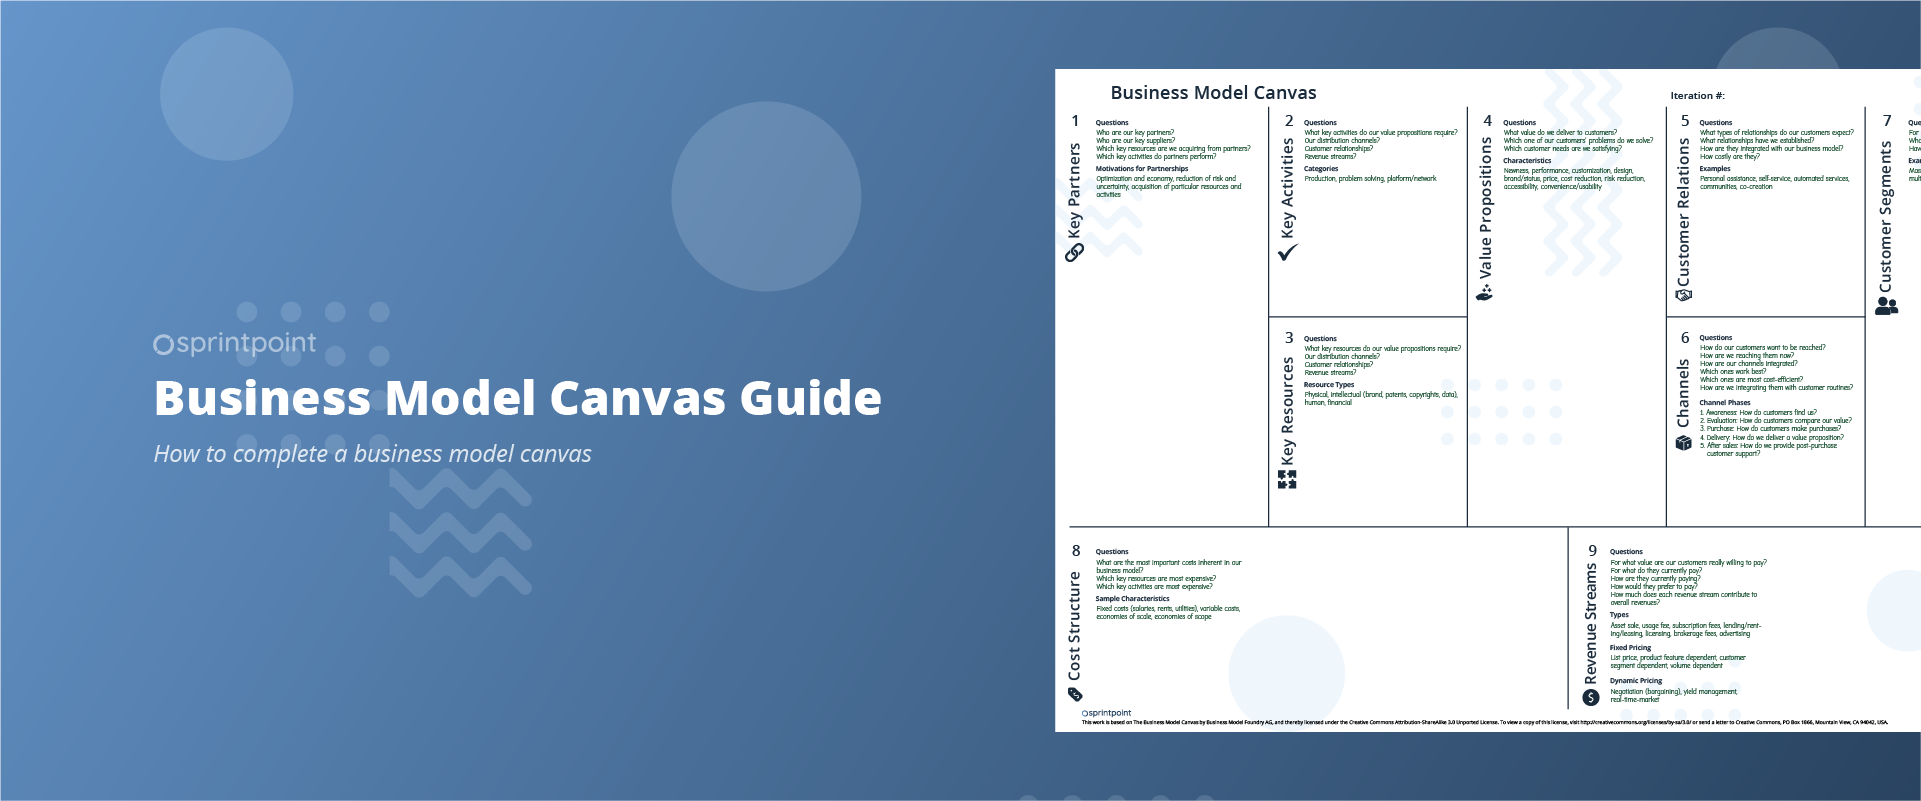 business model canvas guide